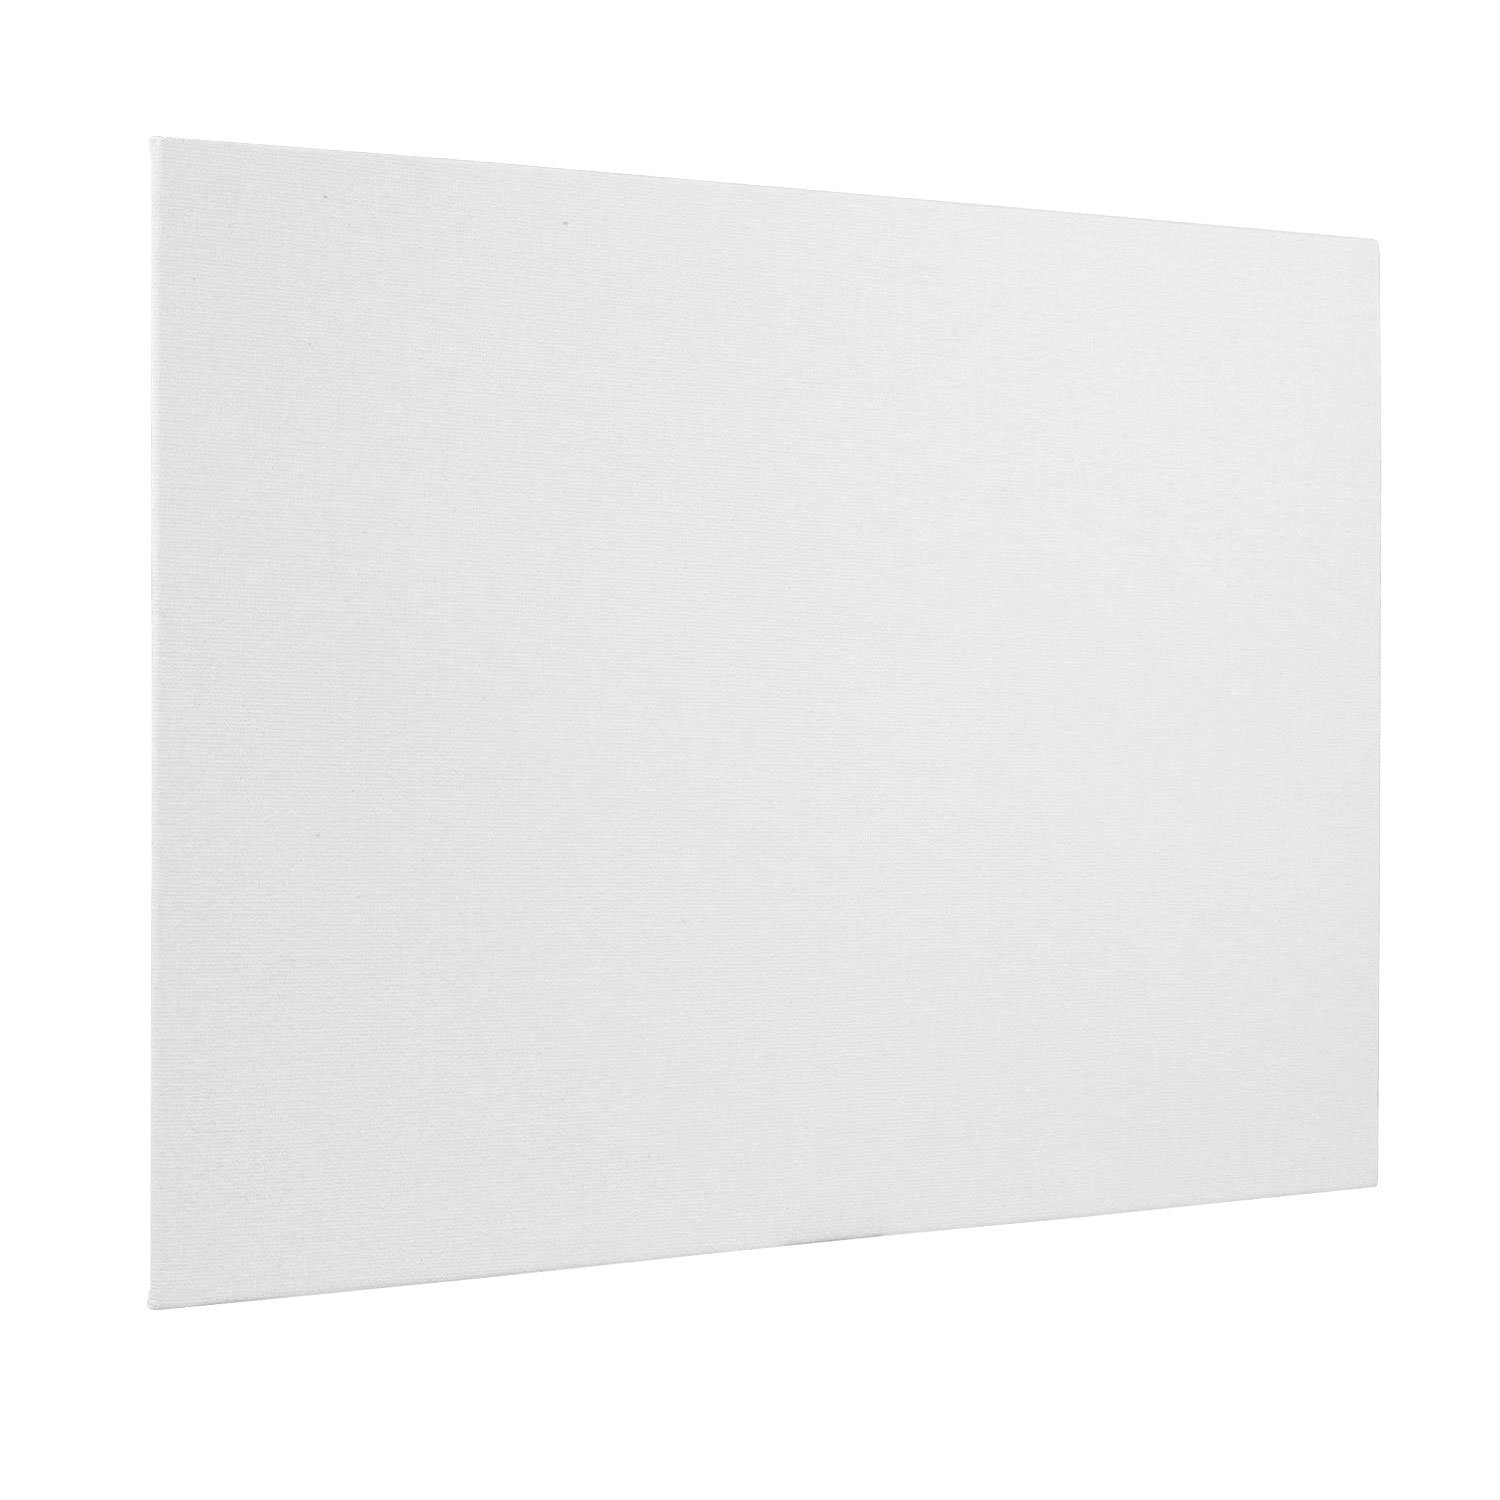 US Art Supply 11 X 14 inch Professional Artist Quality Acid Free Canvas Panels 48-Pack (4 Full Cases of 12 Single Canvas Panels) by US Art Supply (Image #2)